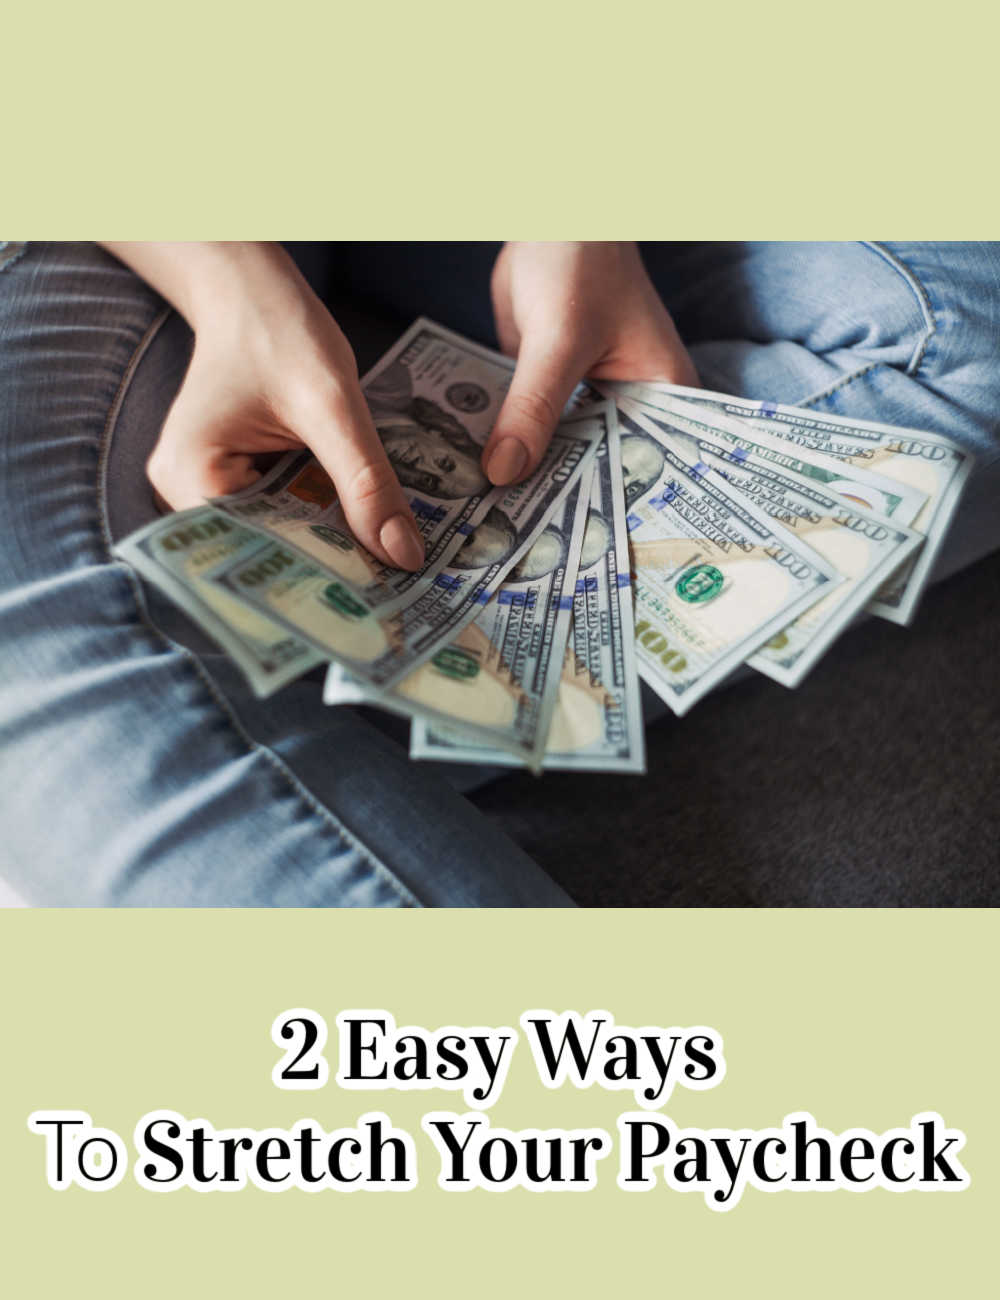 2 Easy Ways To Stretch Your Paycheck